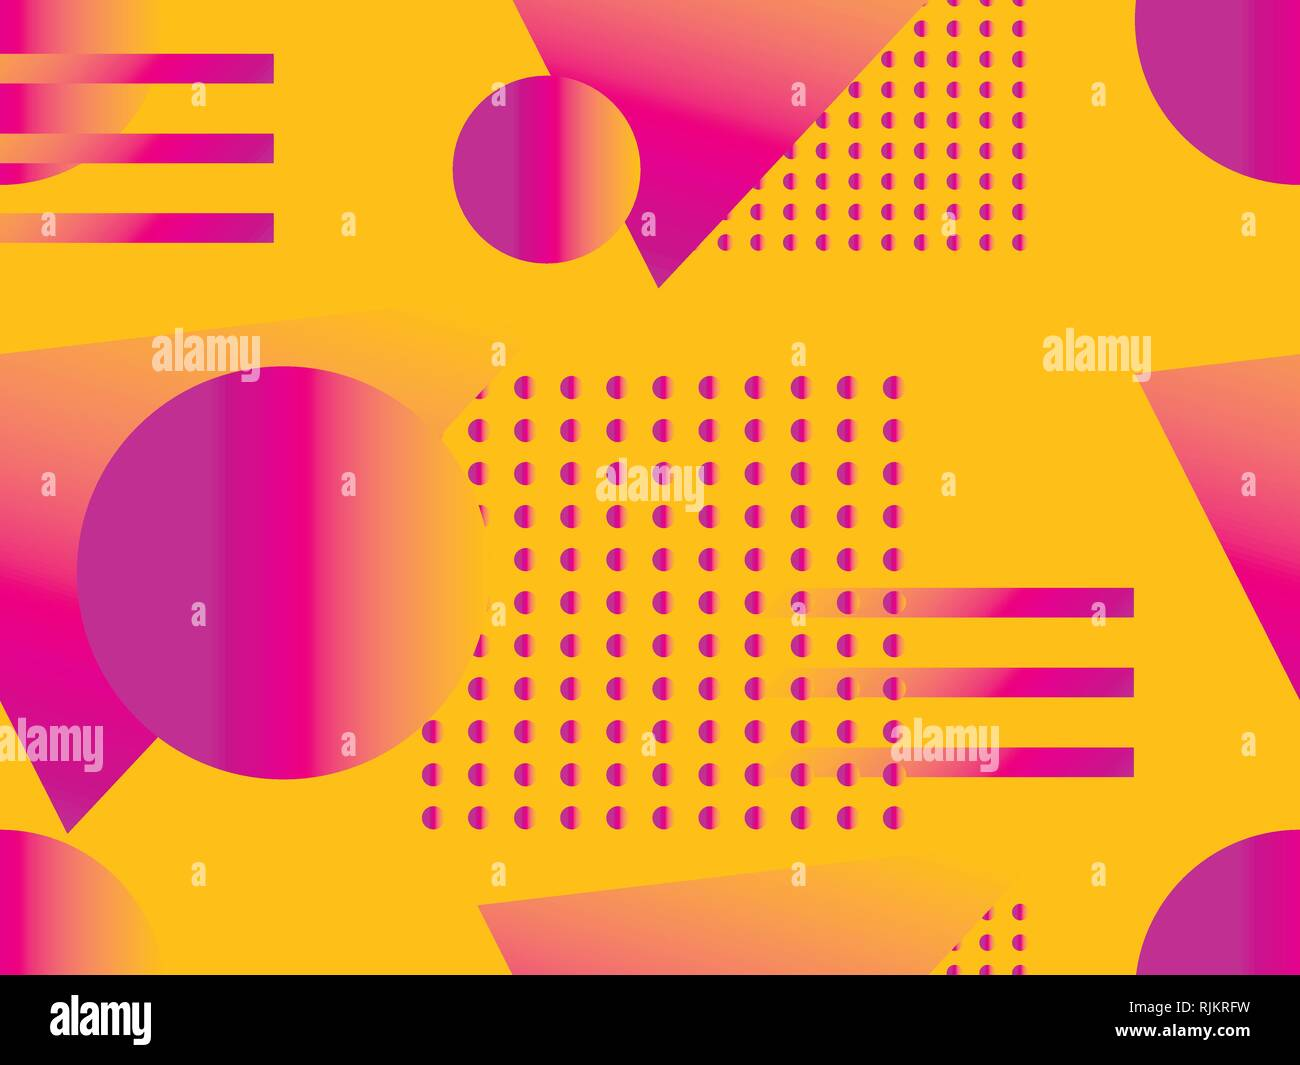 Geometric seamless pattern. Geometric shapes with gradient, memphis style. Zine culture abstract background. Vector illustration Stock Vector